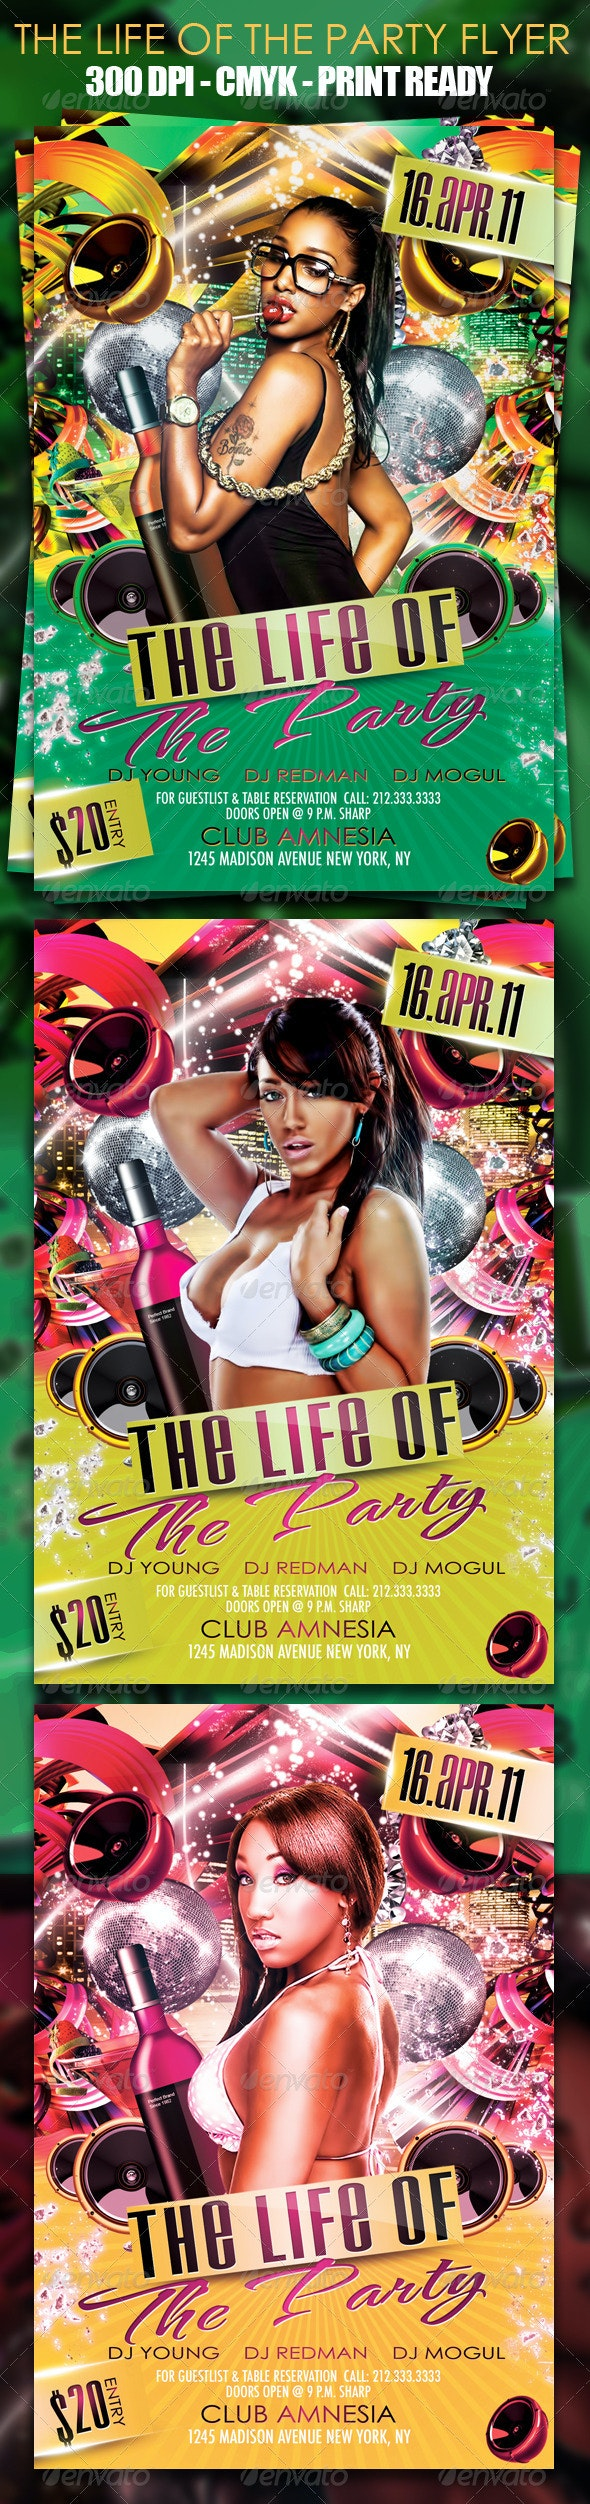 The Life Of The Party Flyer Template - Clubs & Parties Events